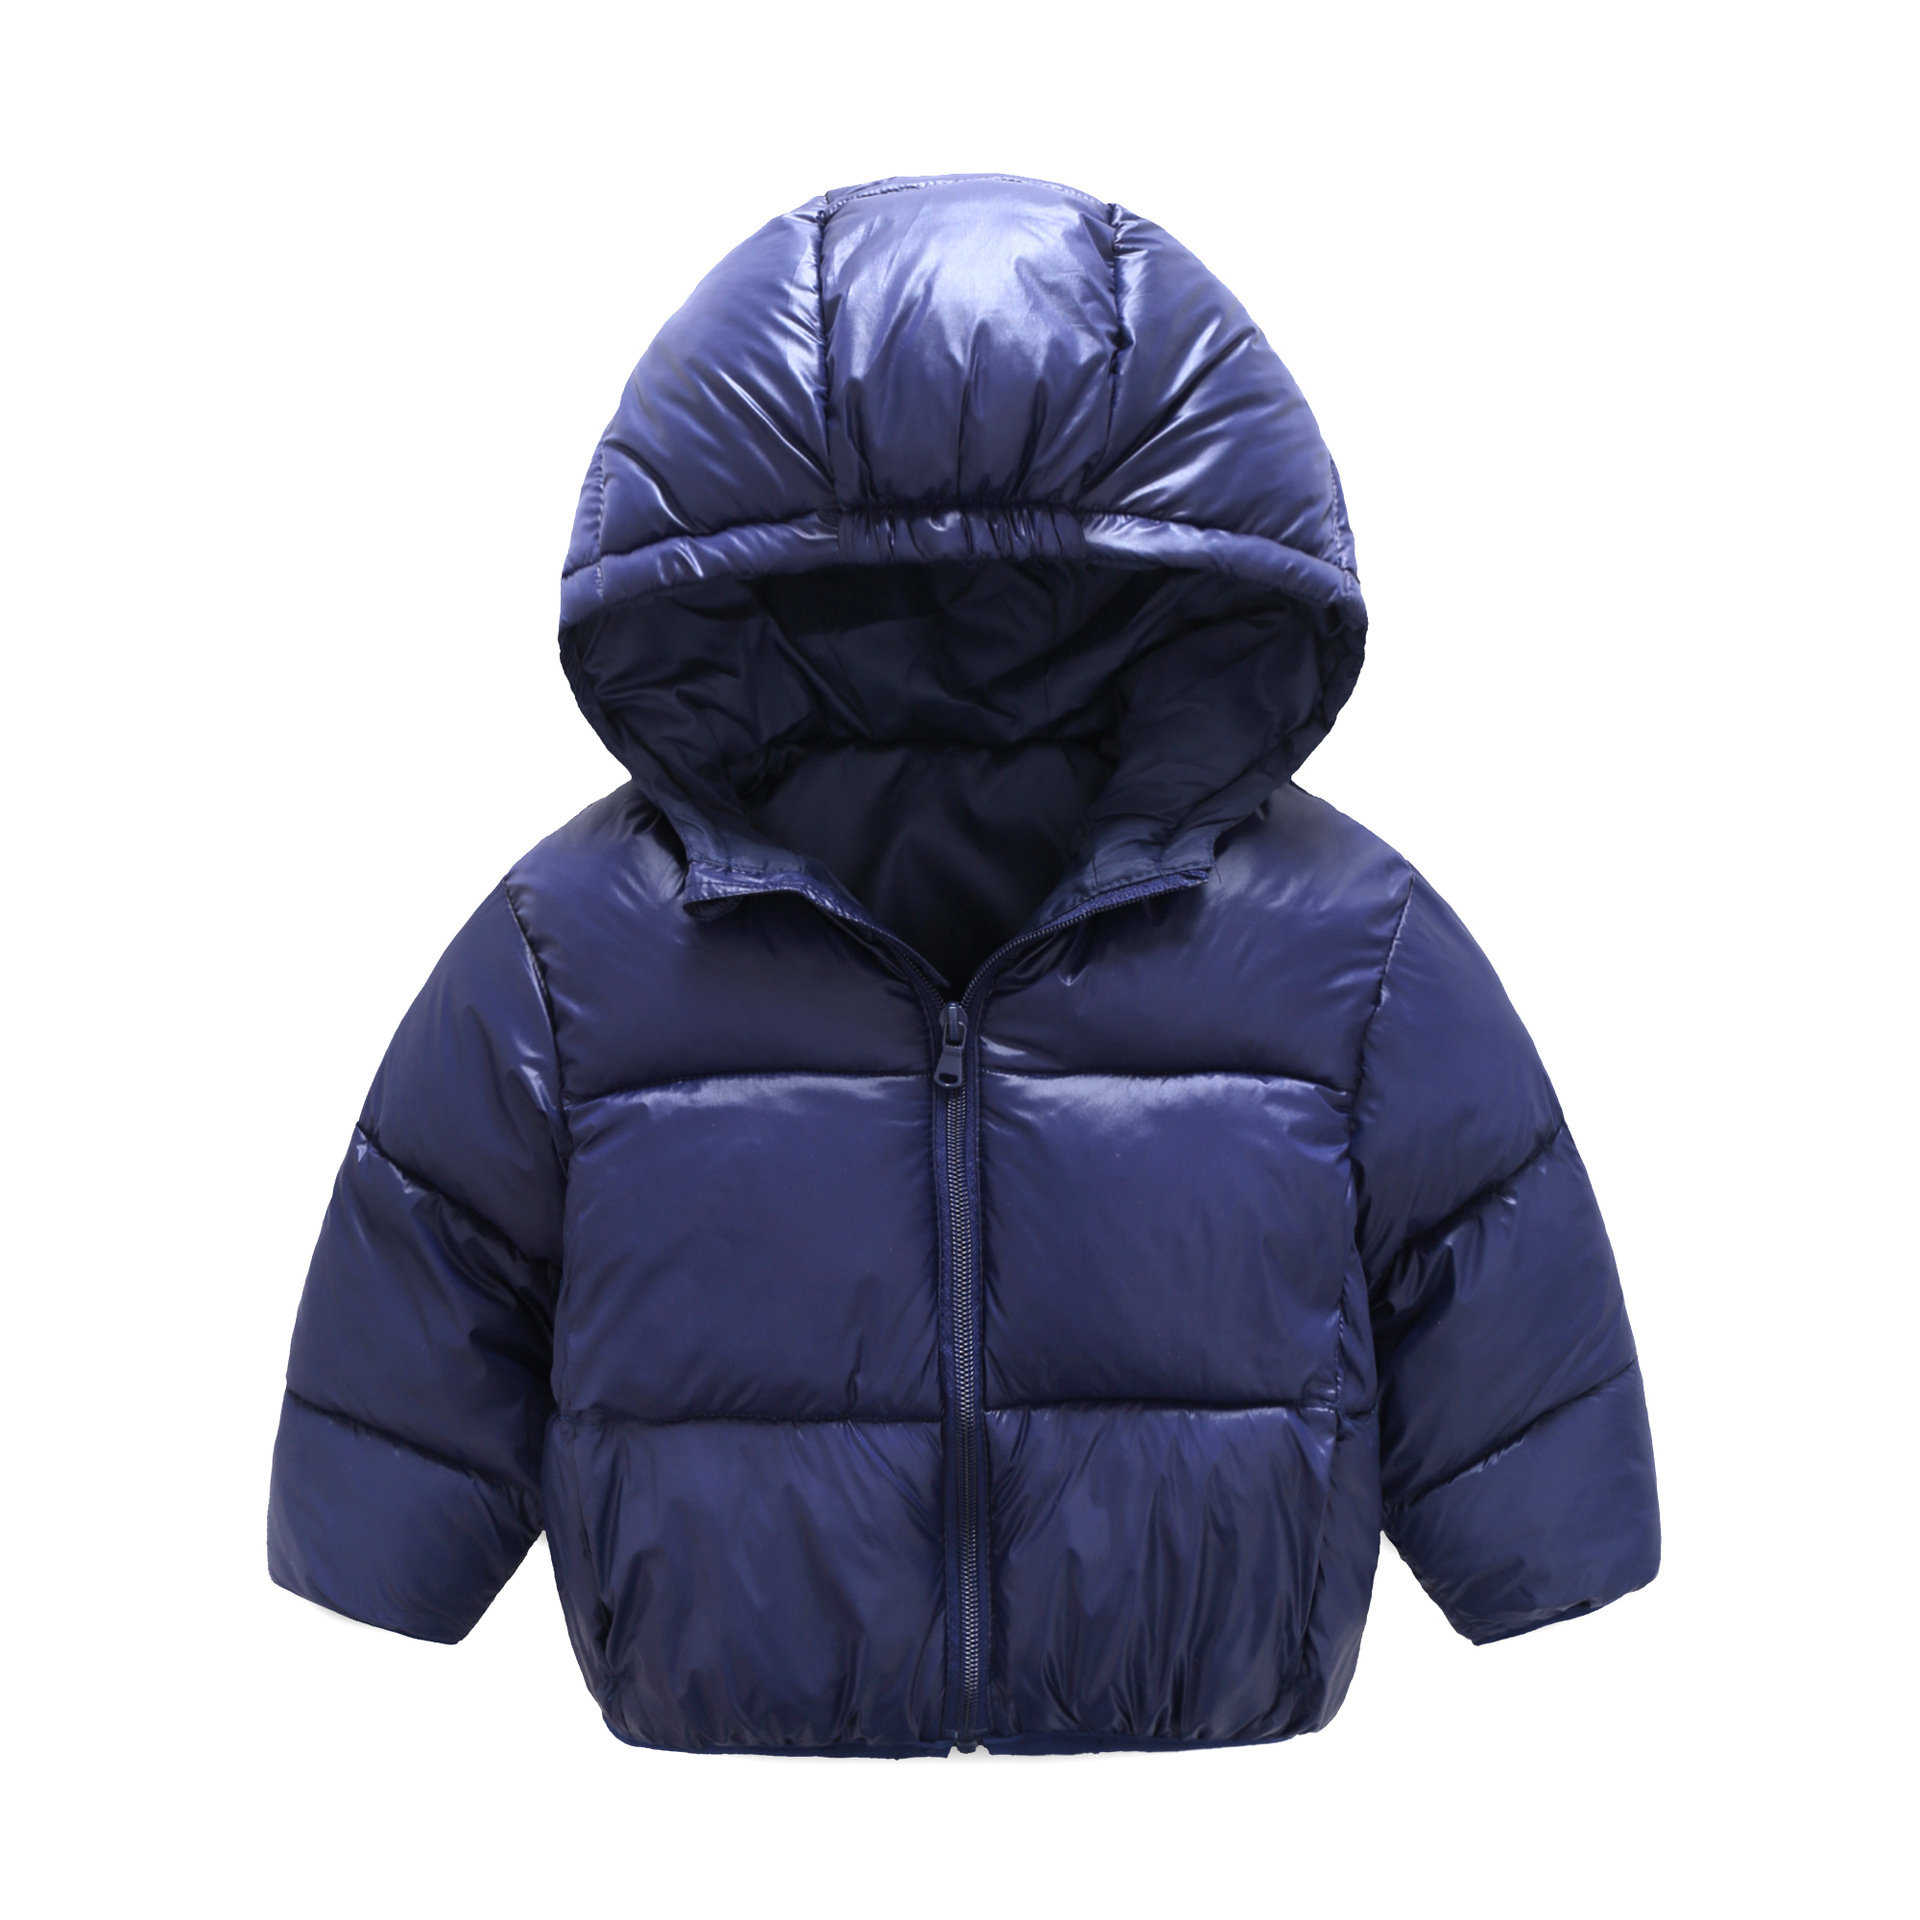 Girls Winter Season Children Cotton Jacket Baby Boy Coat Wear Infant Girls Newborn Kids Overcoat Down Jacket For Girl 11 Colors coolsa new summer linen women slippers fabric eva flat non slip slides linen sandals home slipper lovers casual straw beach shoe page 4